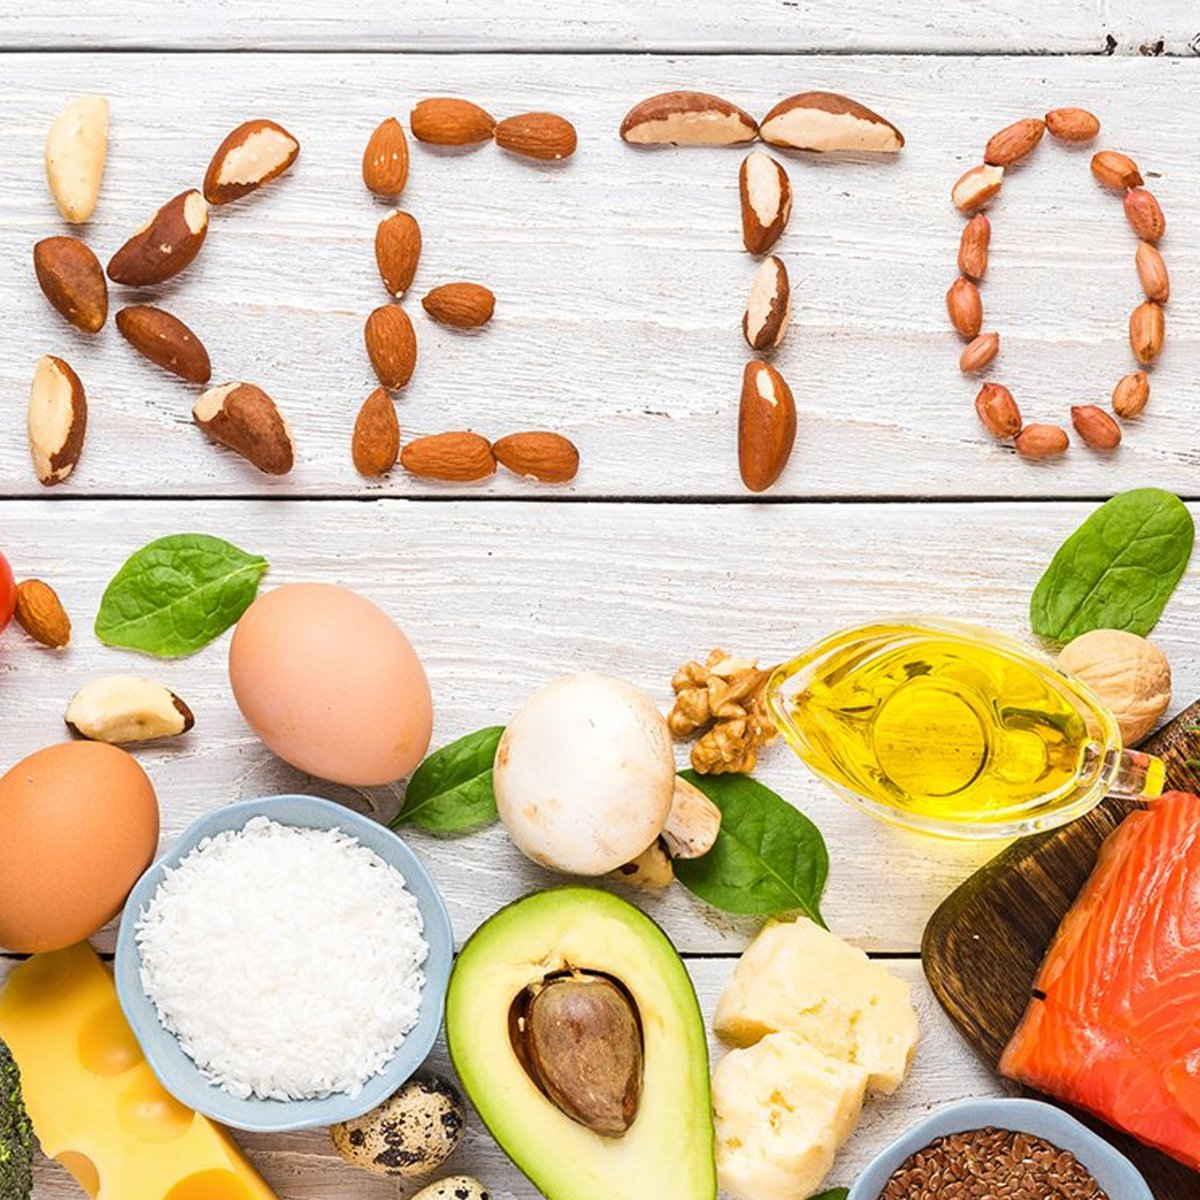 The Complete #keto Keto Diet for Beginners #Health   https:// birdload.com/513578ddaa65fe 24   … <br>http://pic.twitter.com/anXcVMrT7A